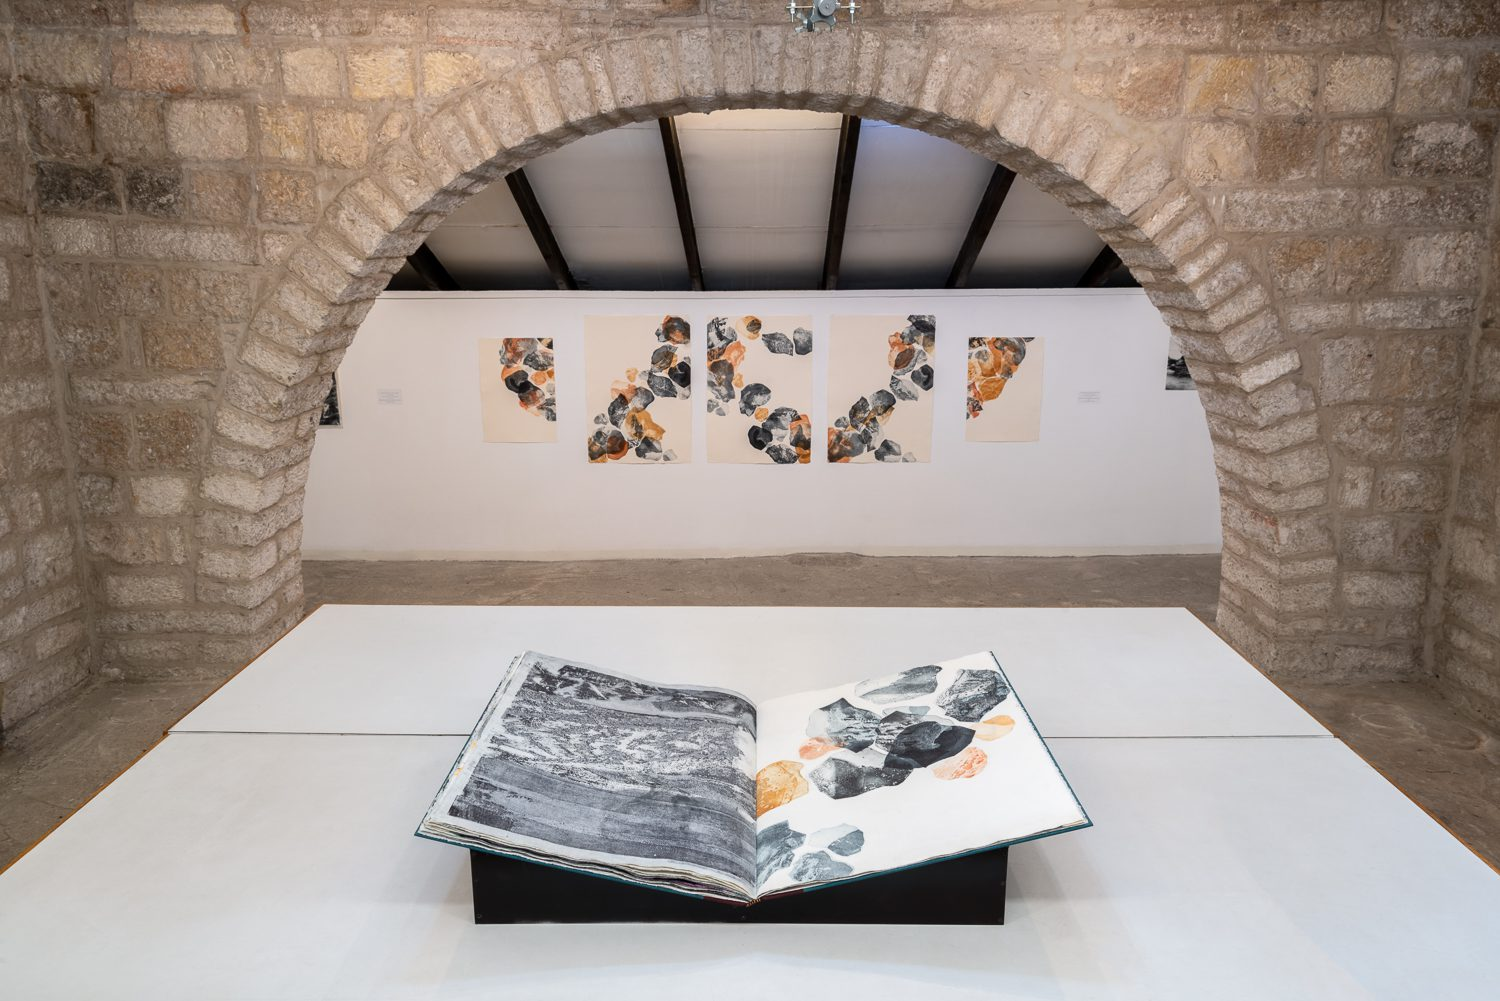 Installation view (Photo: Yacob Israel)